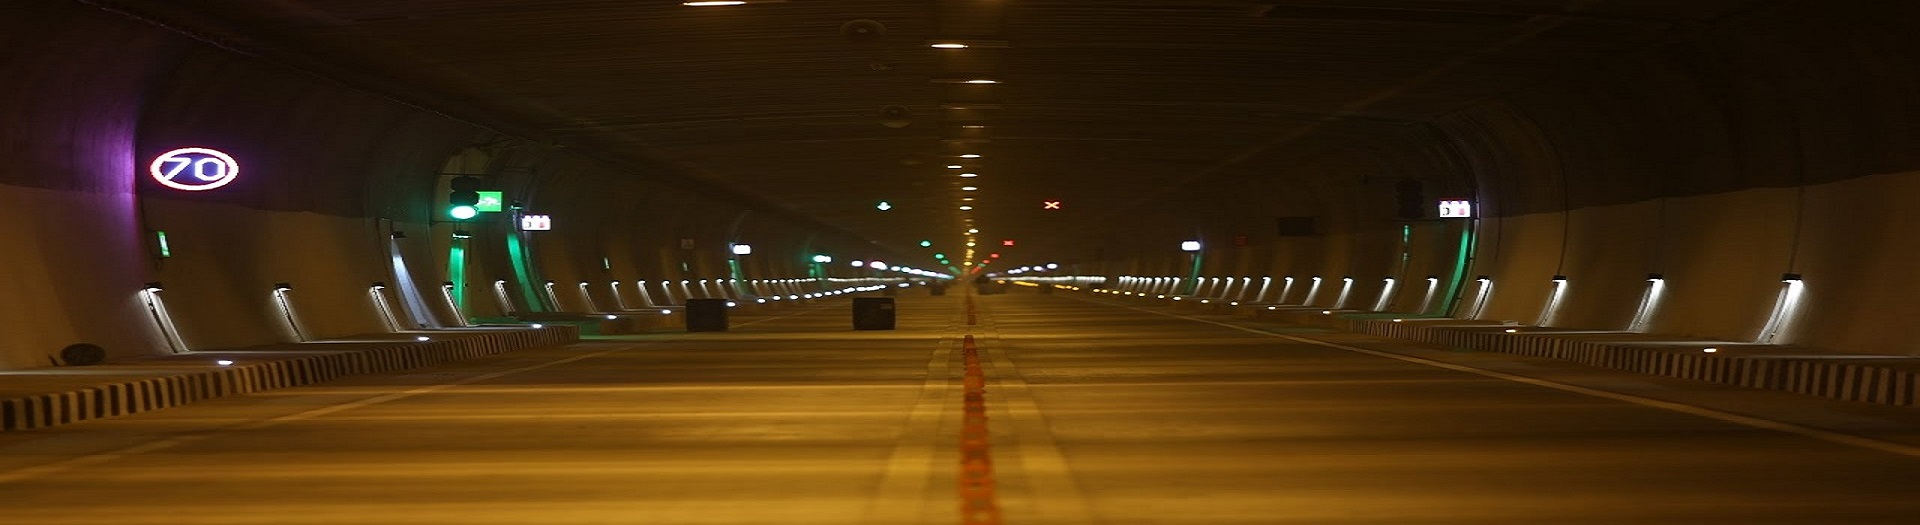 Chenani Nashri Tunnel Highway